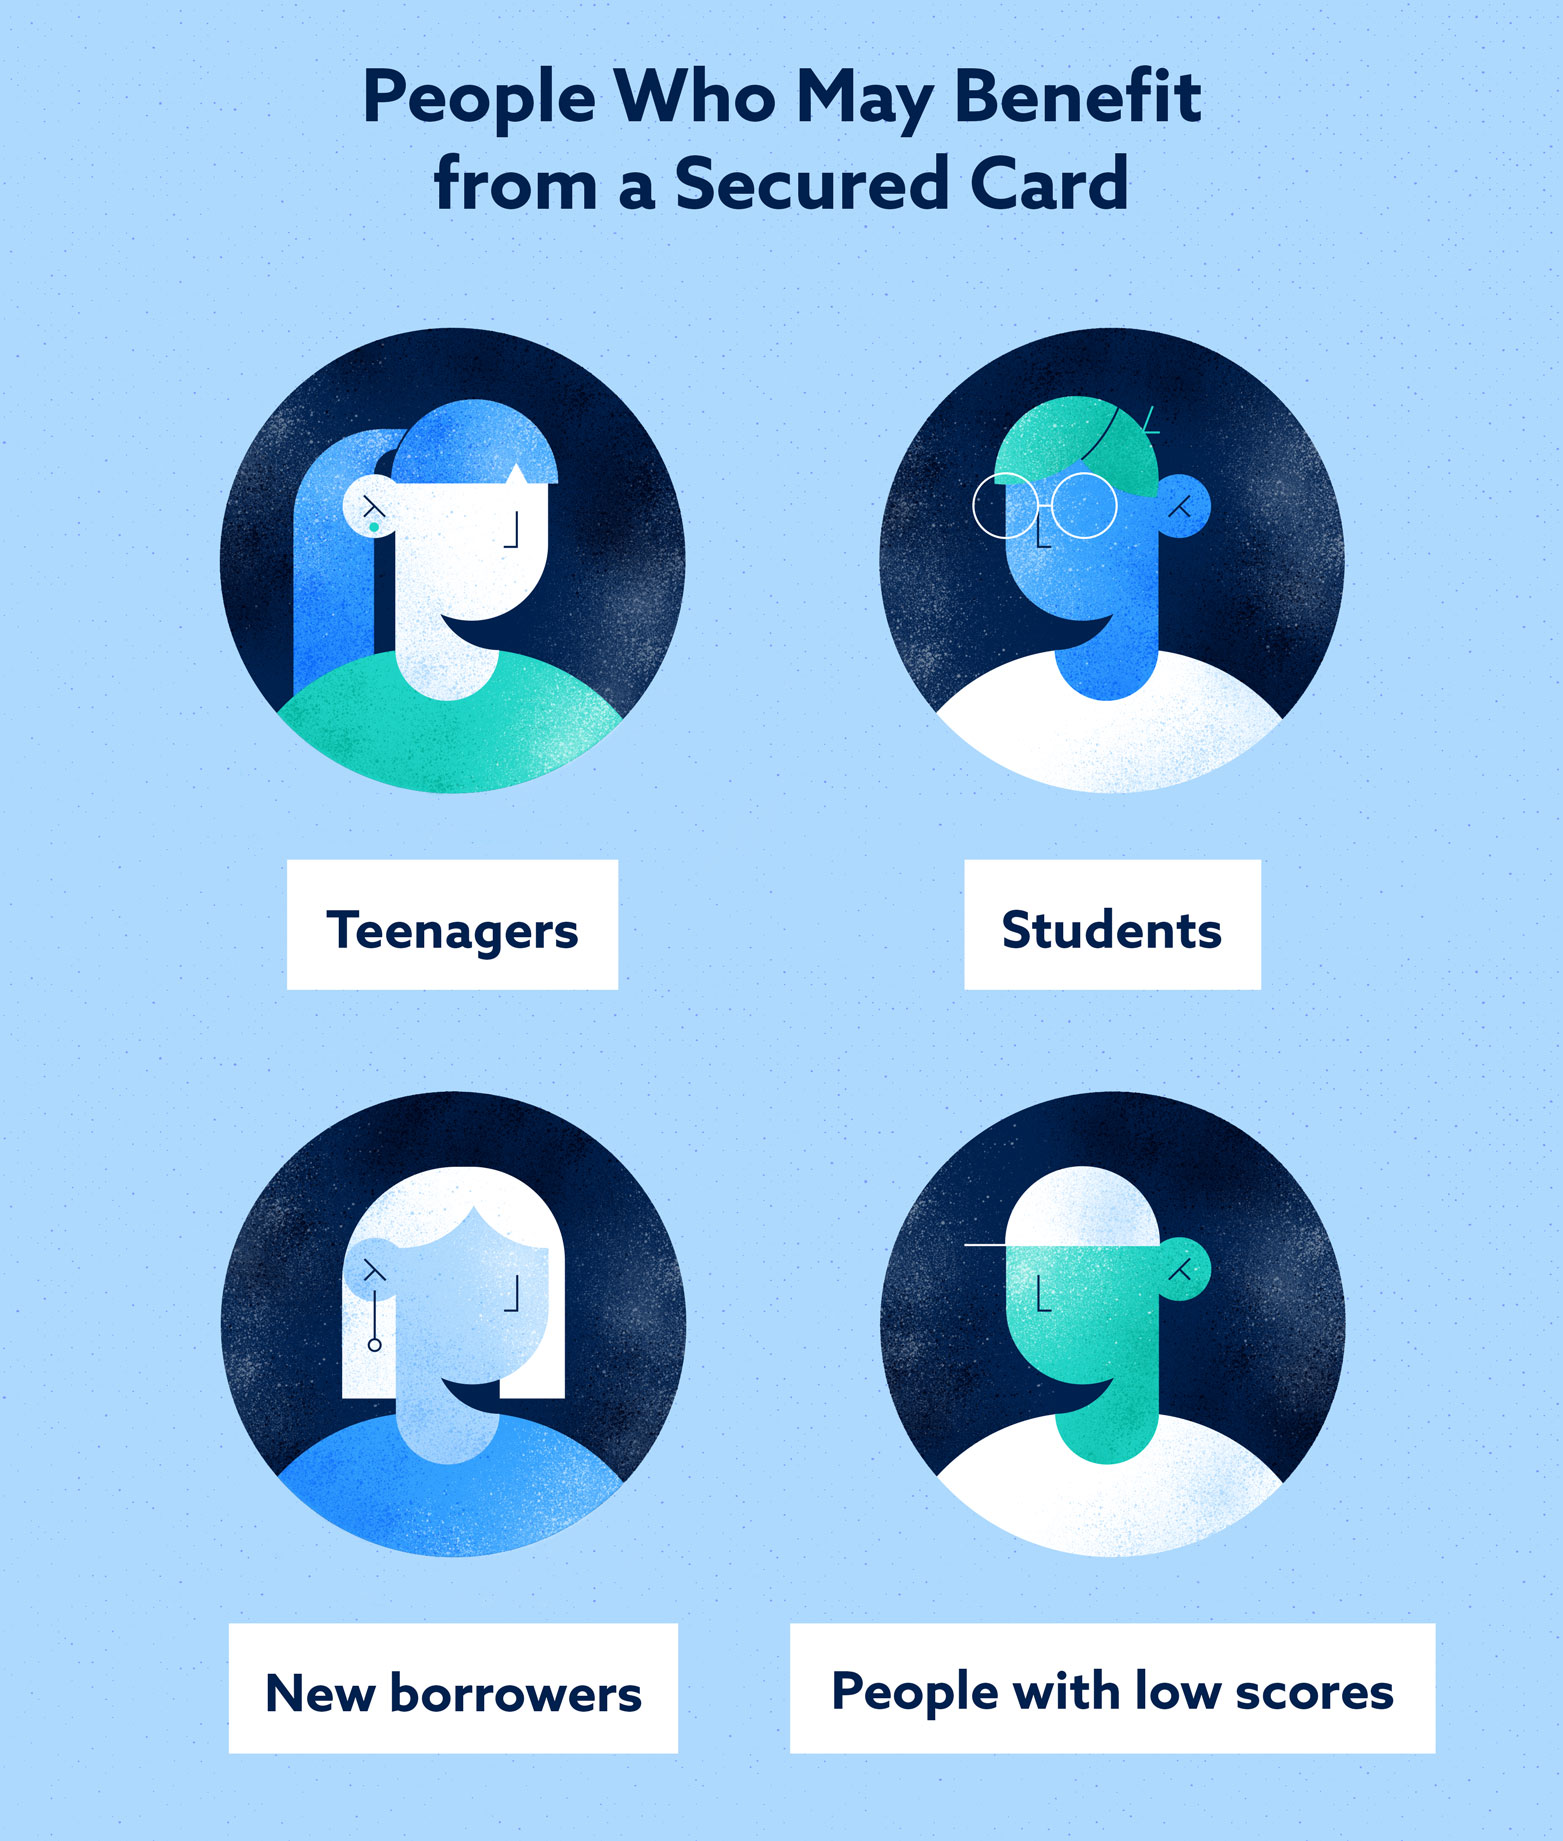 people who may benefit from a secured card